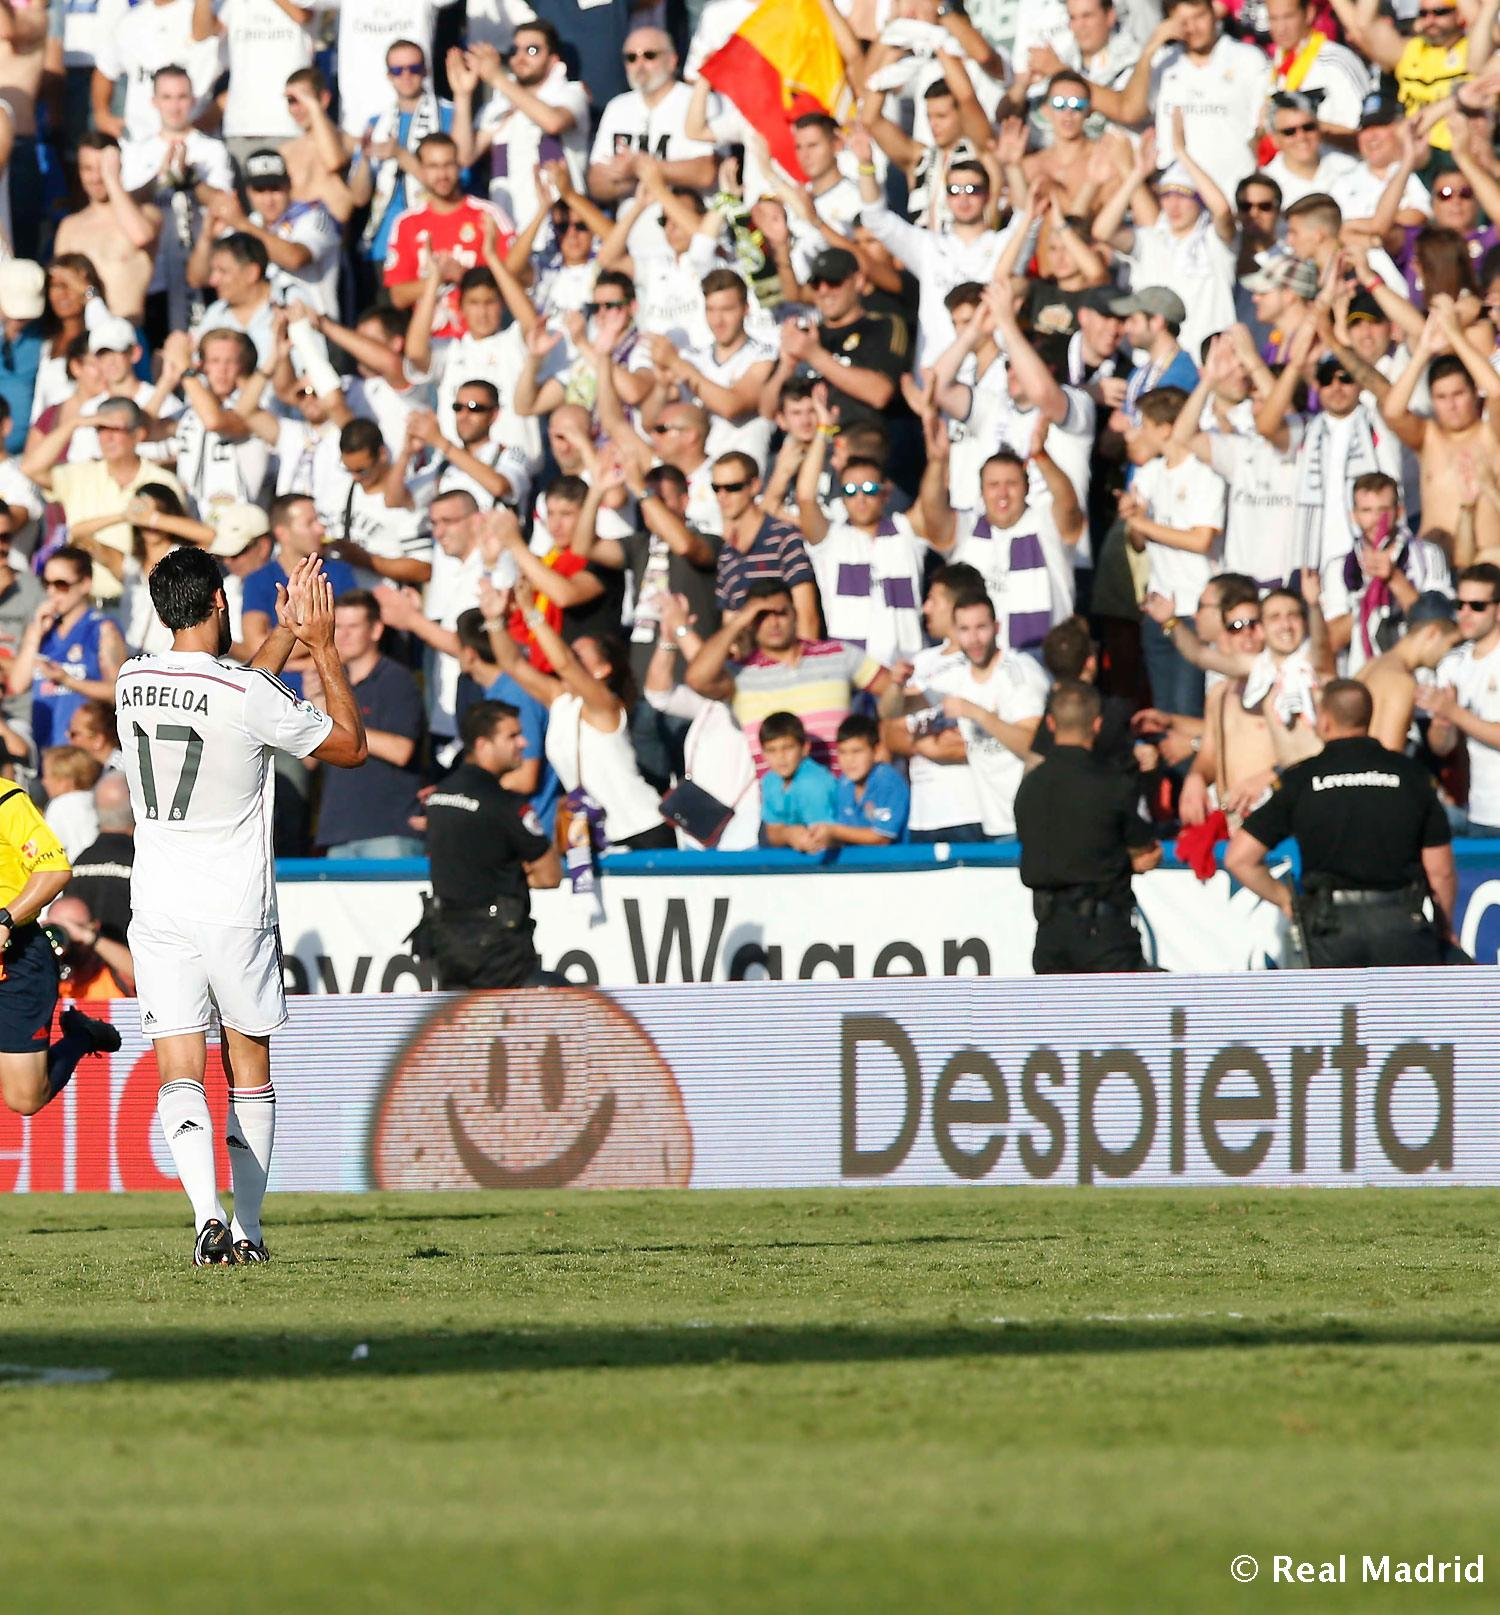 Real Madrid - Aficionados en el Levante - Real Madrid - 18-10-2014